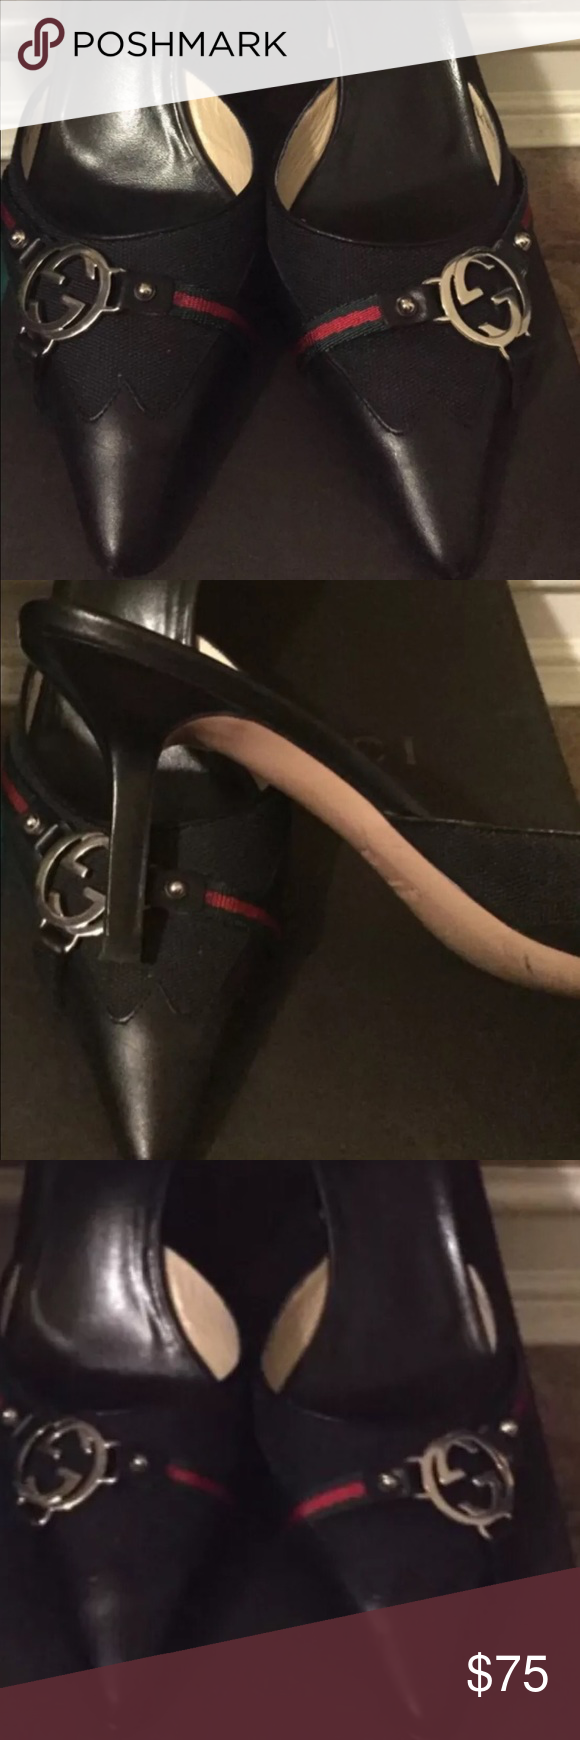 Gucci mules Black fabric on leather authentic Gucci mules with the traditional red and green logo colors and silver Gucci emblem. Comes with box Gucci Shoes Heels